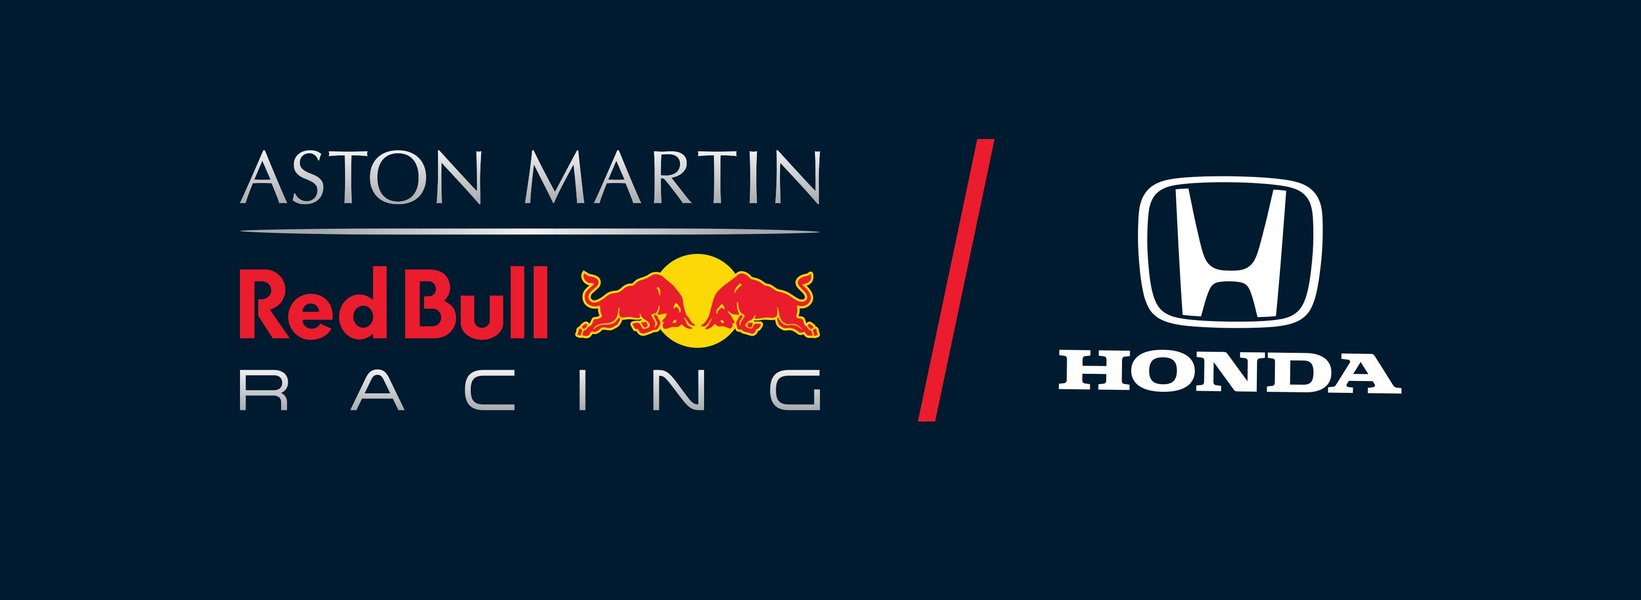 Red Bull Racing + Honda